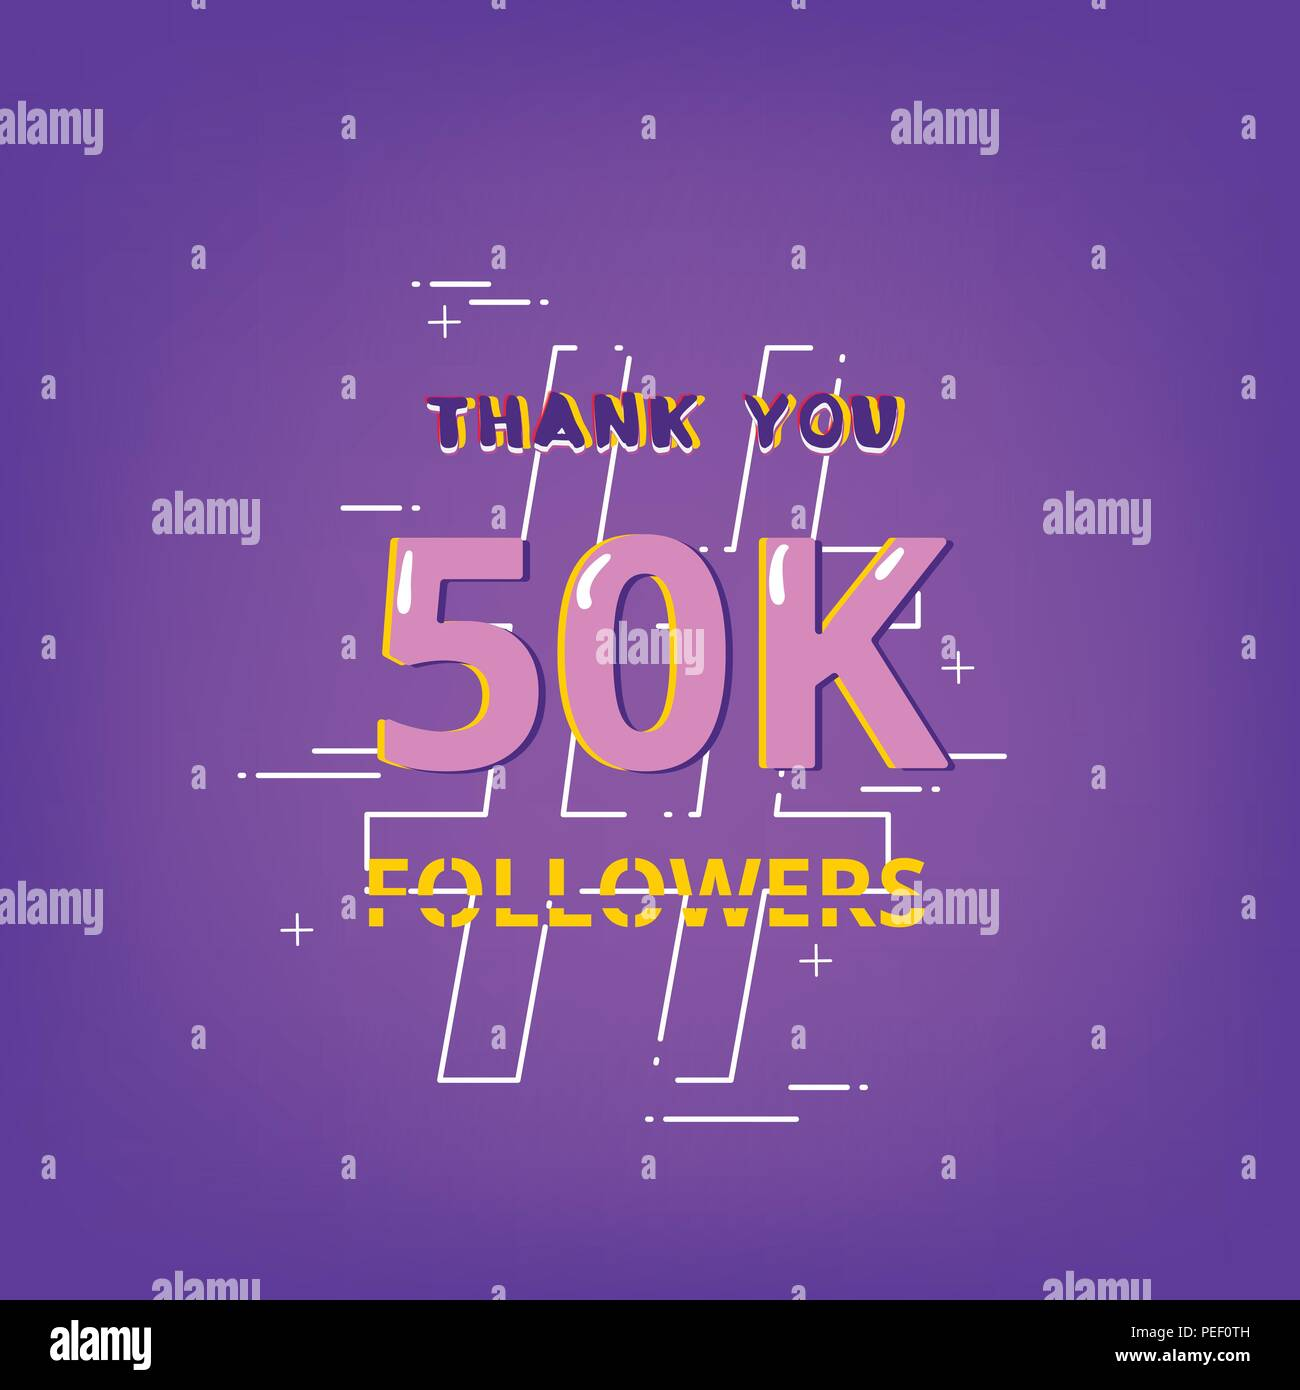 50k followers thank you phrase with random items template for